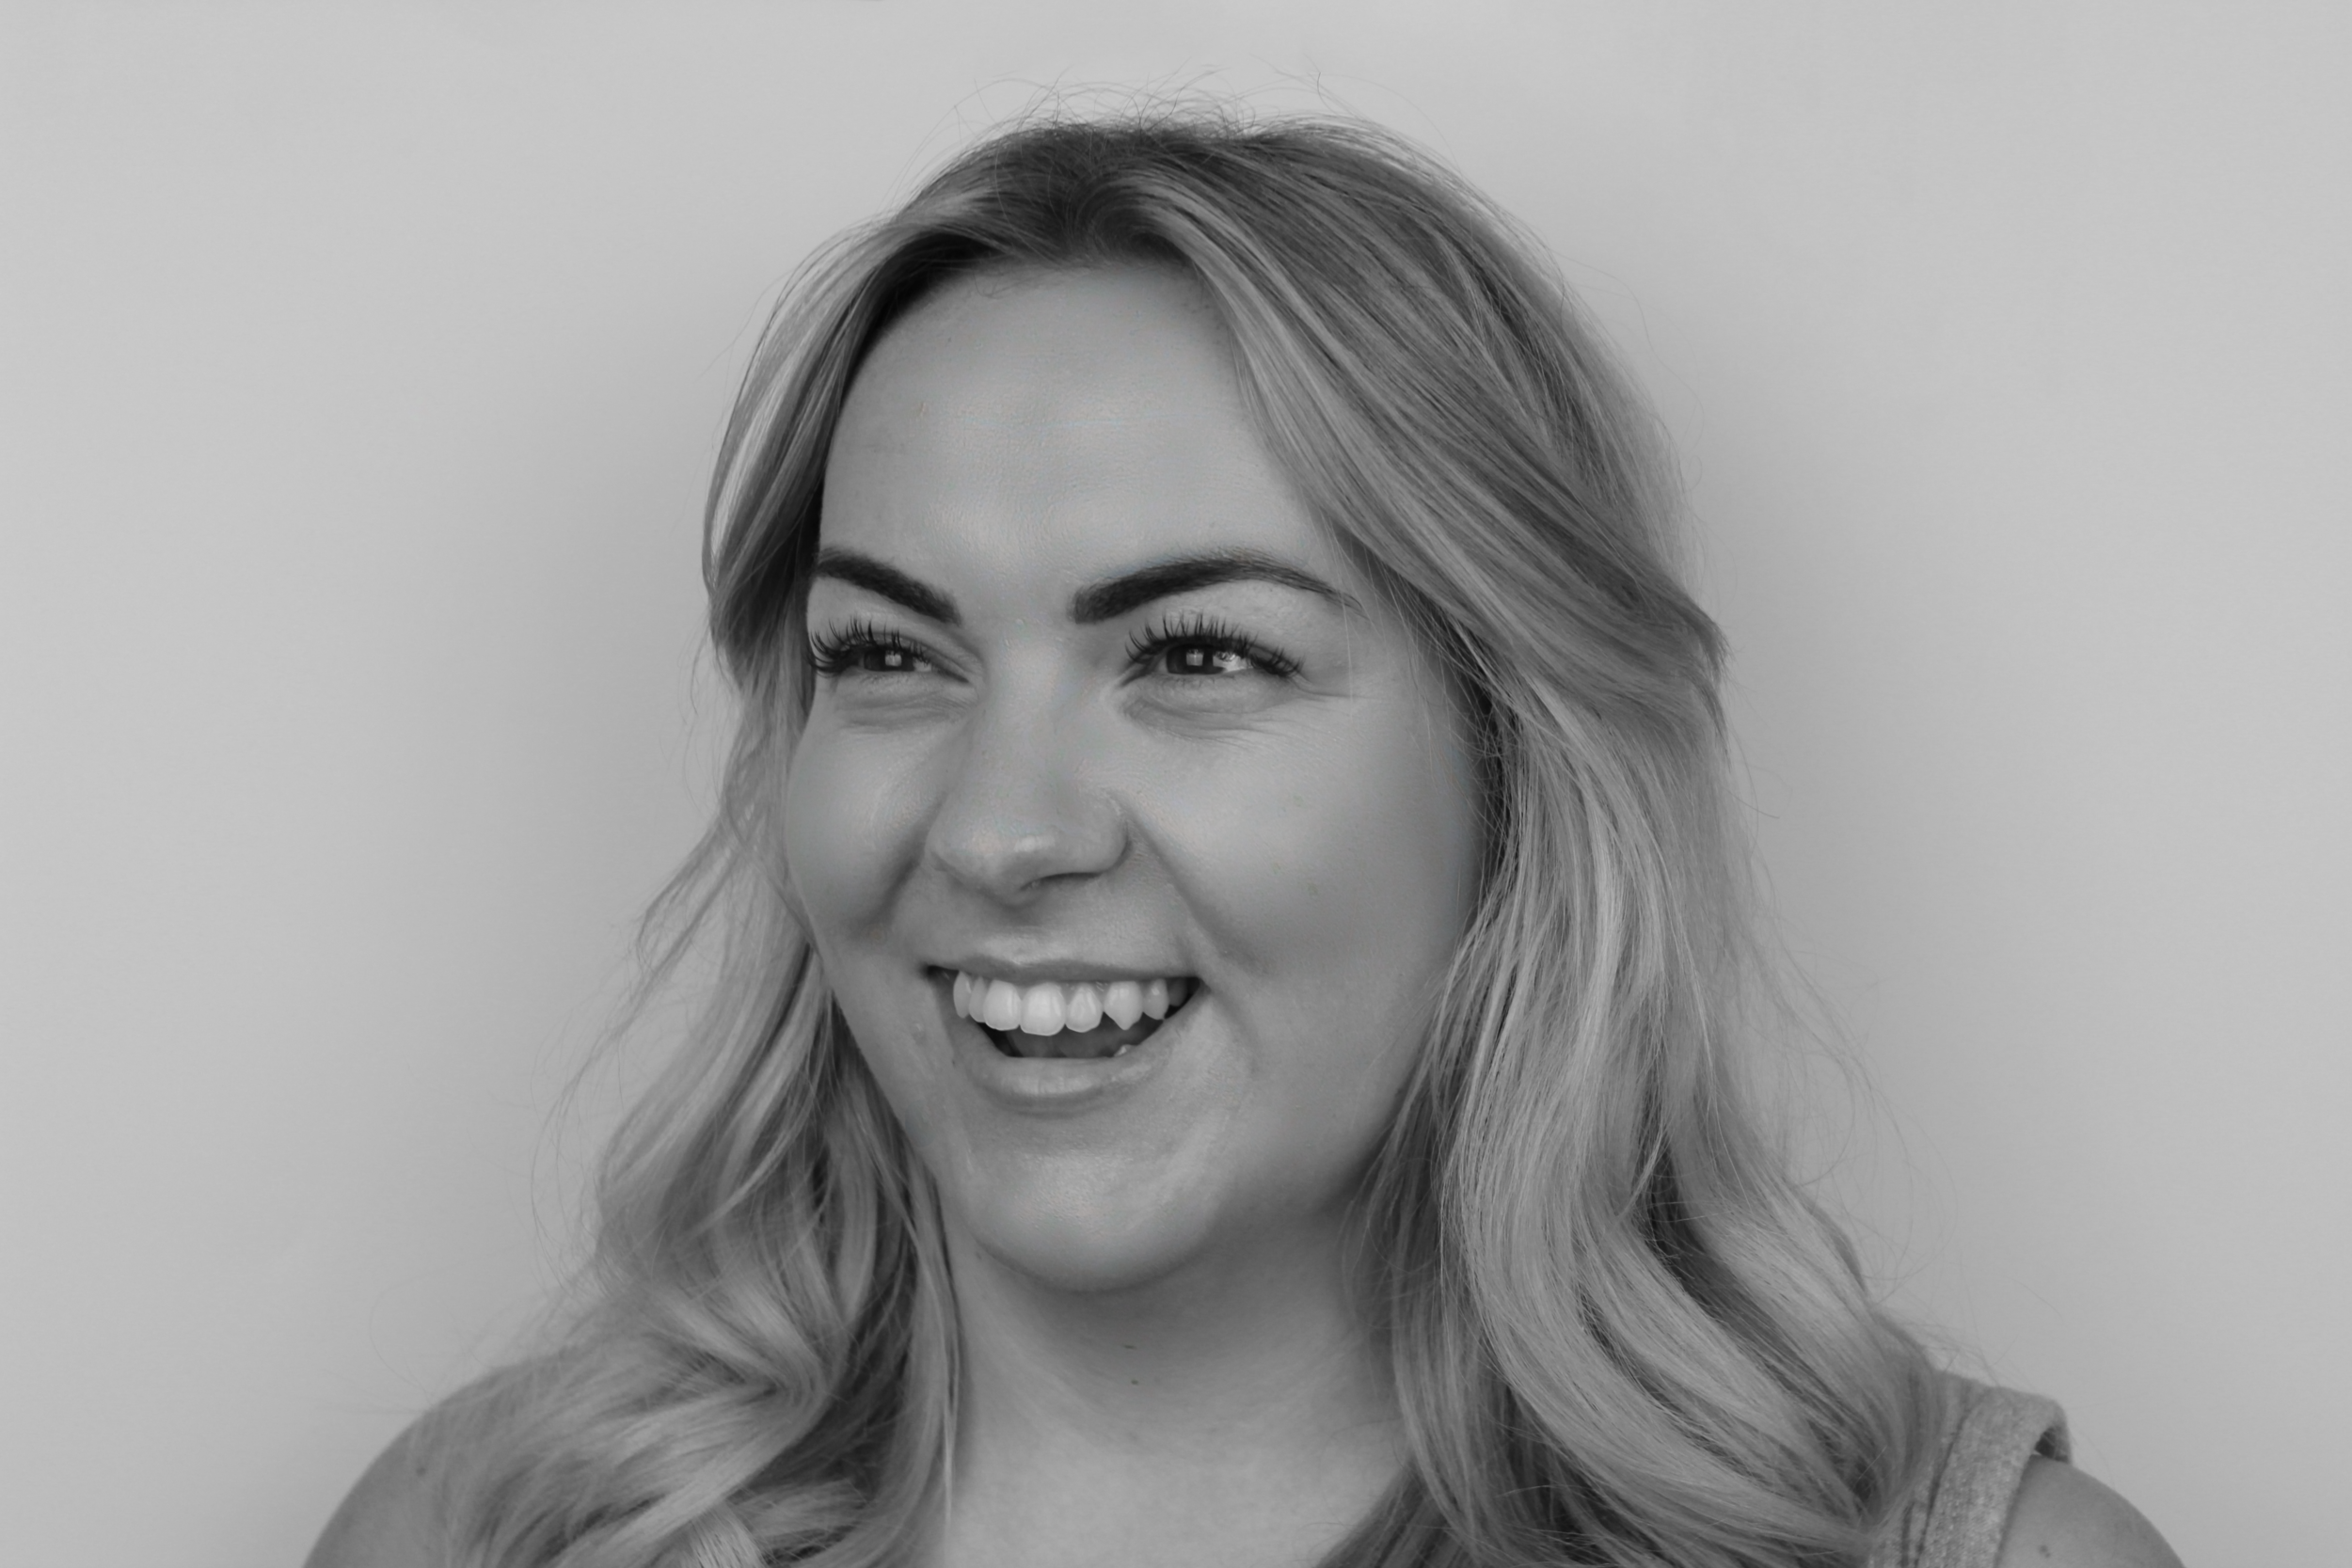 Lowri has recently graduated from the University of Manchester with a degree in Management specialising in Marketing. Lowri achieved a first class degree, with a particular focus on entrepreneurship, marketing strategy, consumer behaviour and CRM management.      She has a wealth of knowledge of marketing and years' experience in events and customer service. Lowri is focused on working closely with one of our successful invested brands.